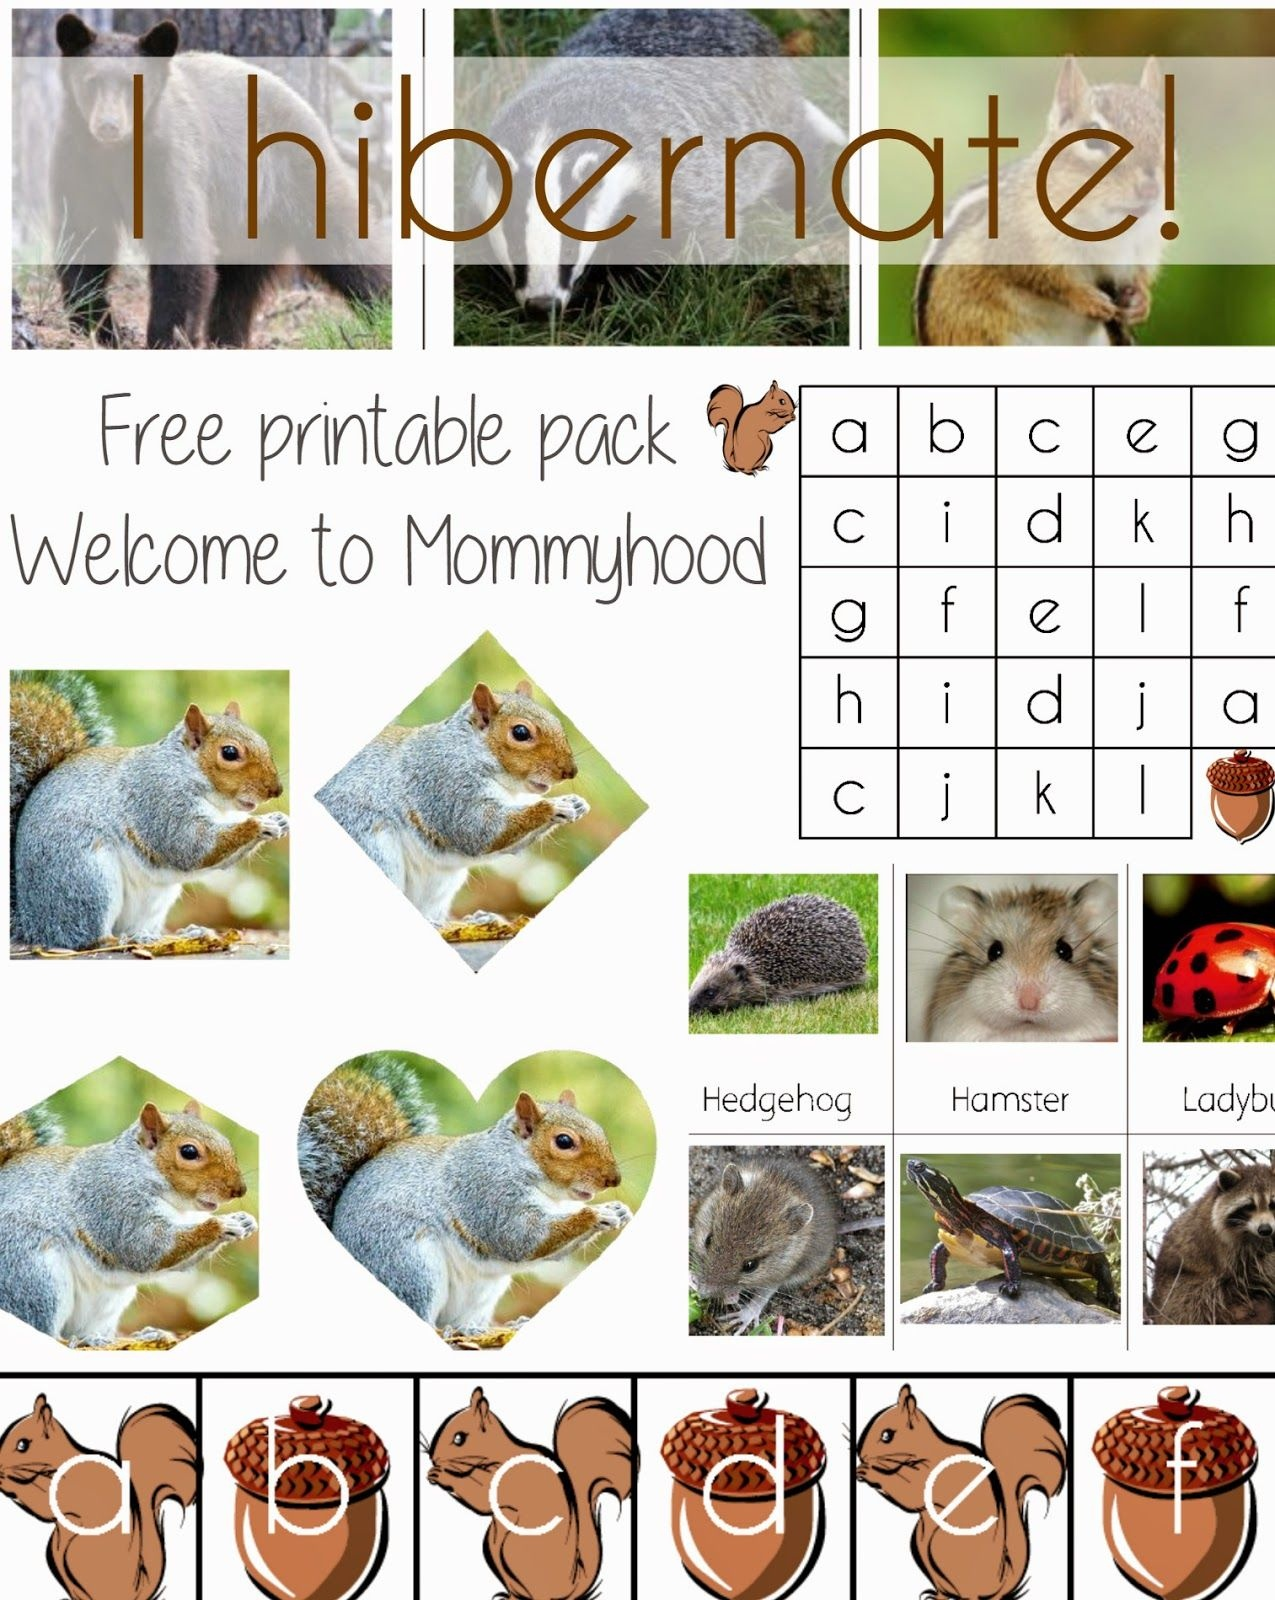 Science Activities For Preschoolers And Toddlers: Hibernation - Free Printable Hibernation Worksheets